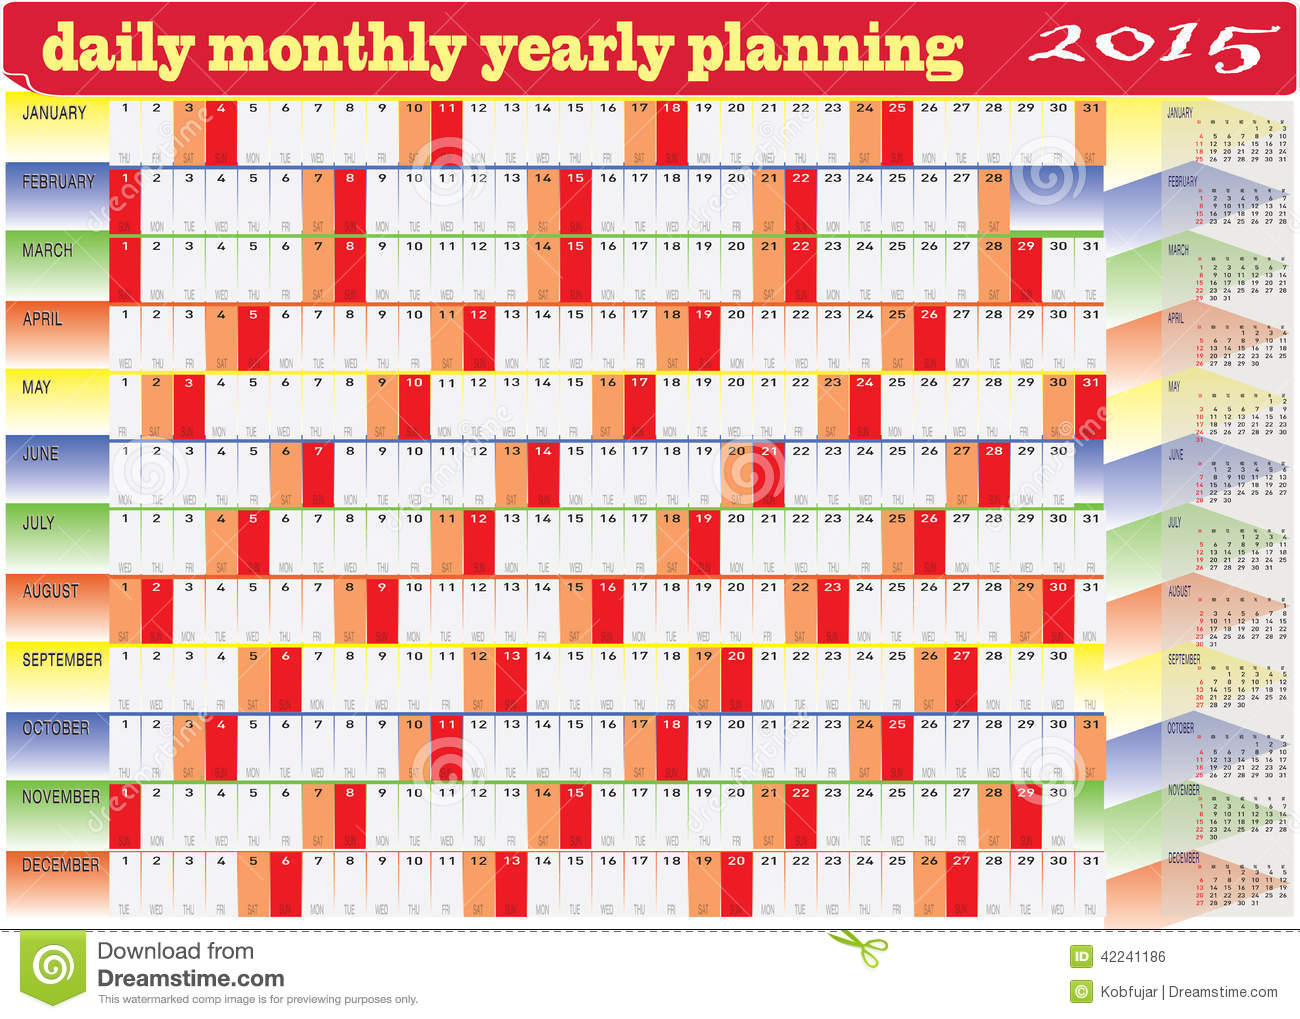 Monthly Calendar Yearly : Daily monthly yearly calendar planning chart stock